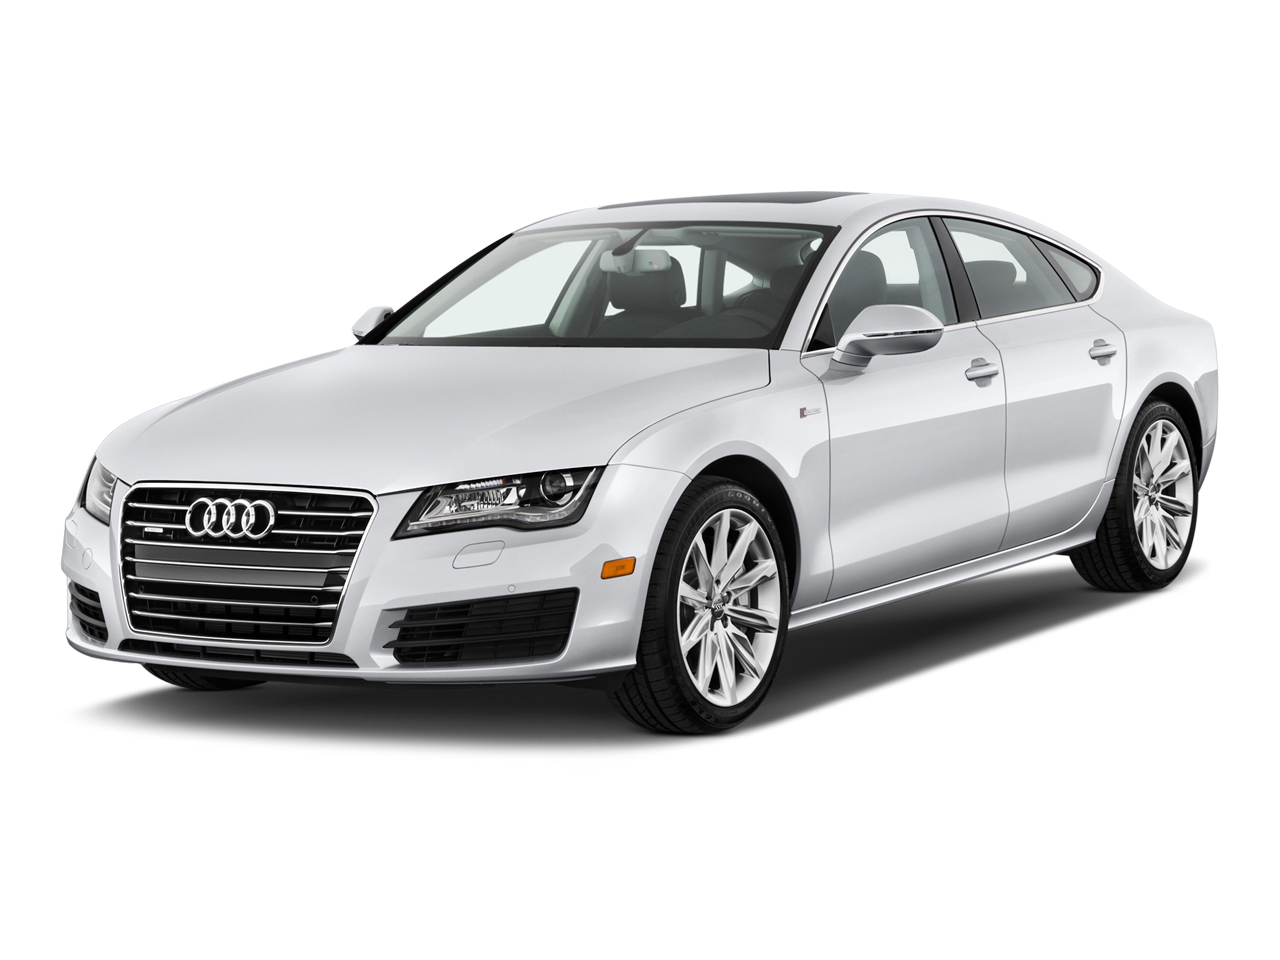 2012 audi a7 review ratings specs prices and photos the car connection. Black Bedroom Furniture Sets. Home Design Ideas